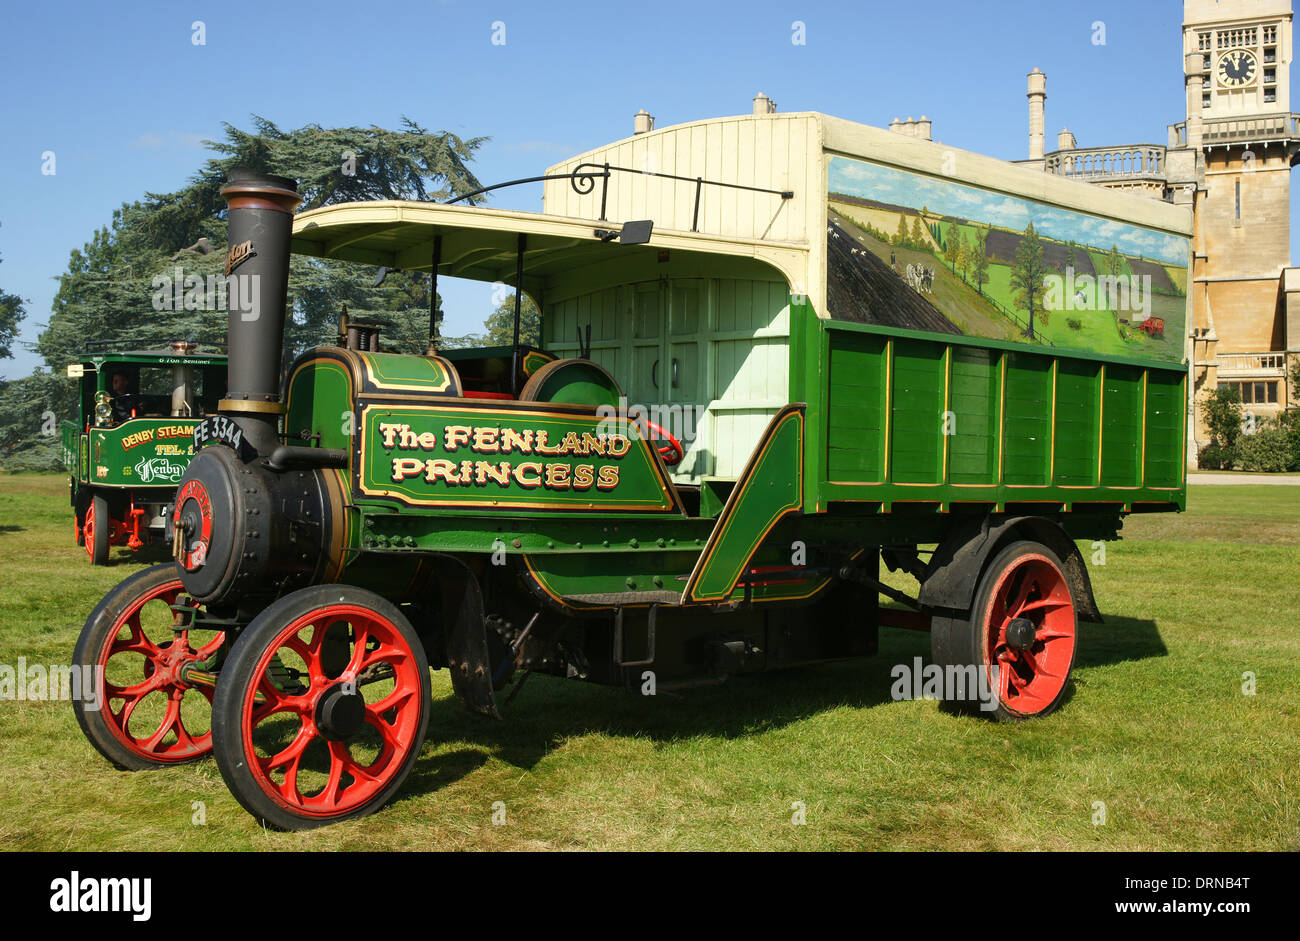 1920 Clayton & Shuttleworth compound 2 speed steam Wagon 48510 5 tons FE 3344 The Fenland Princess - Stock Image